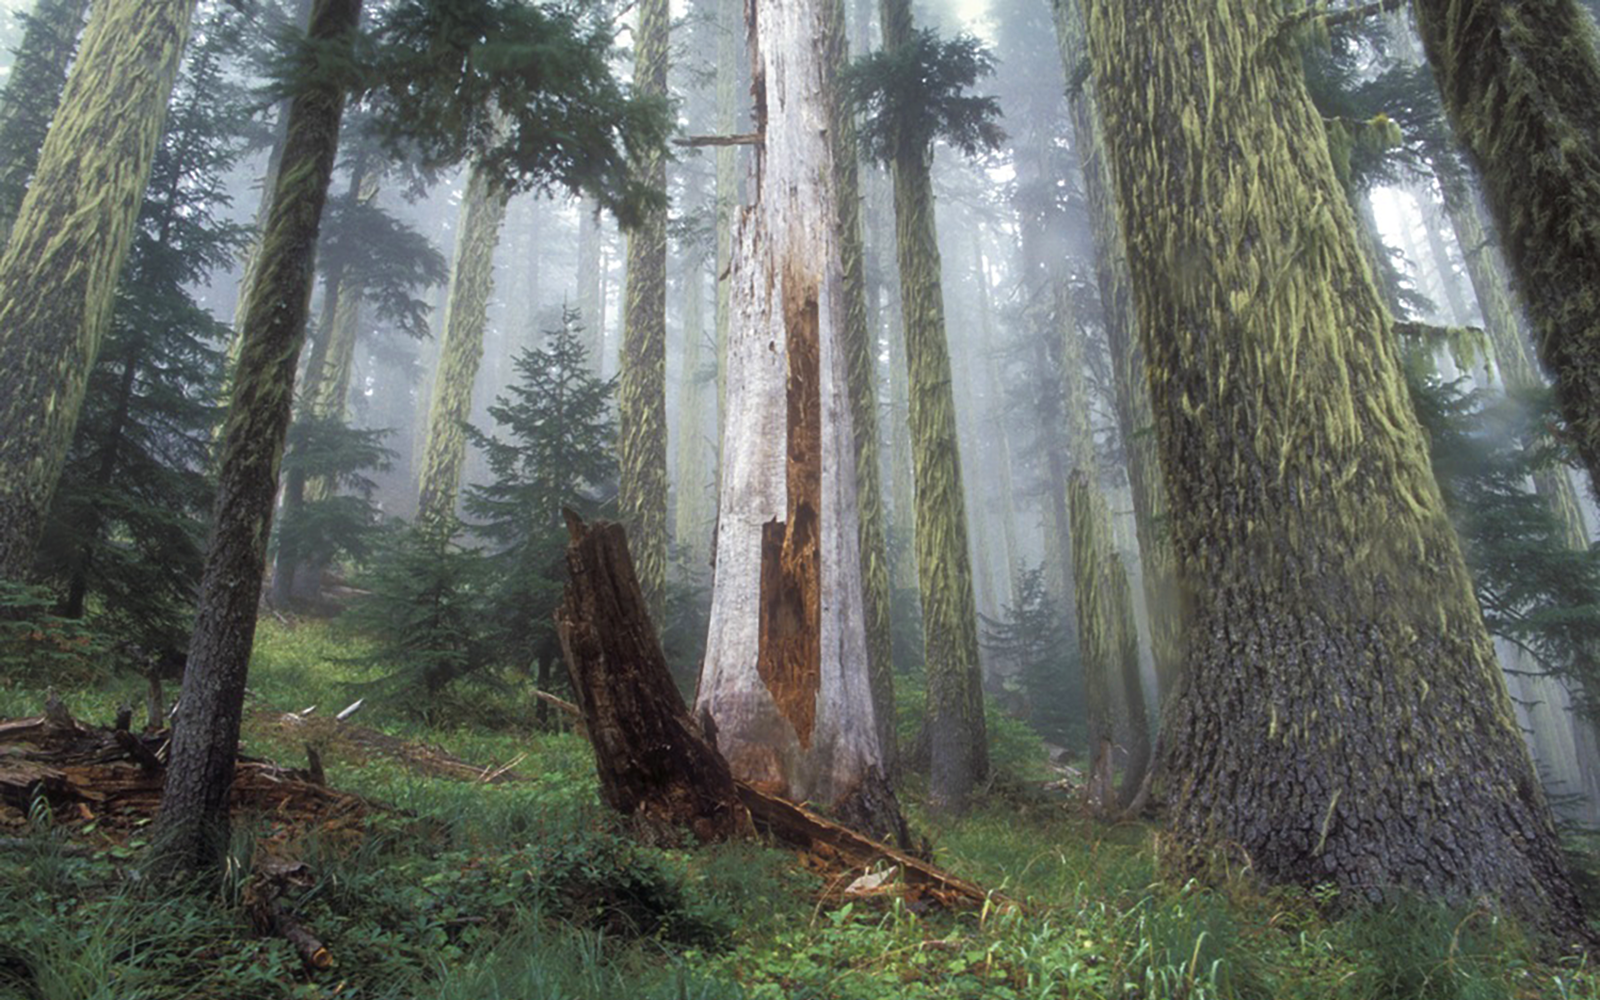 Demand that the Oregon Department of Forestry Do Better!